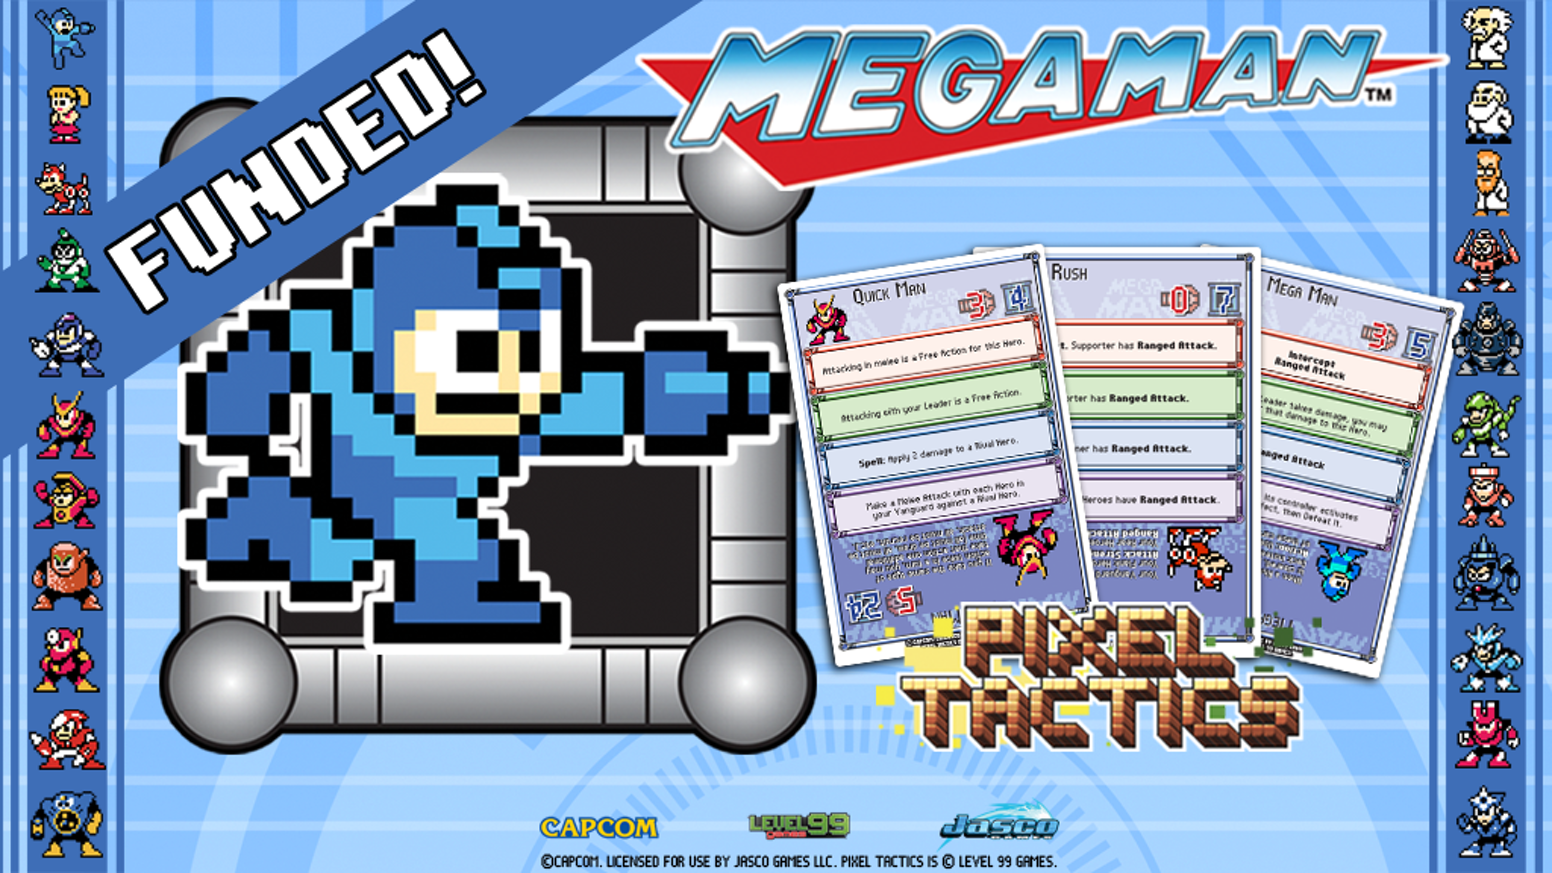 Mega Man blasts his way into Pixel Tactics! Experience this SRPG style, pocket-sized card game featuring 50+ Classic Characters!